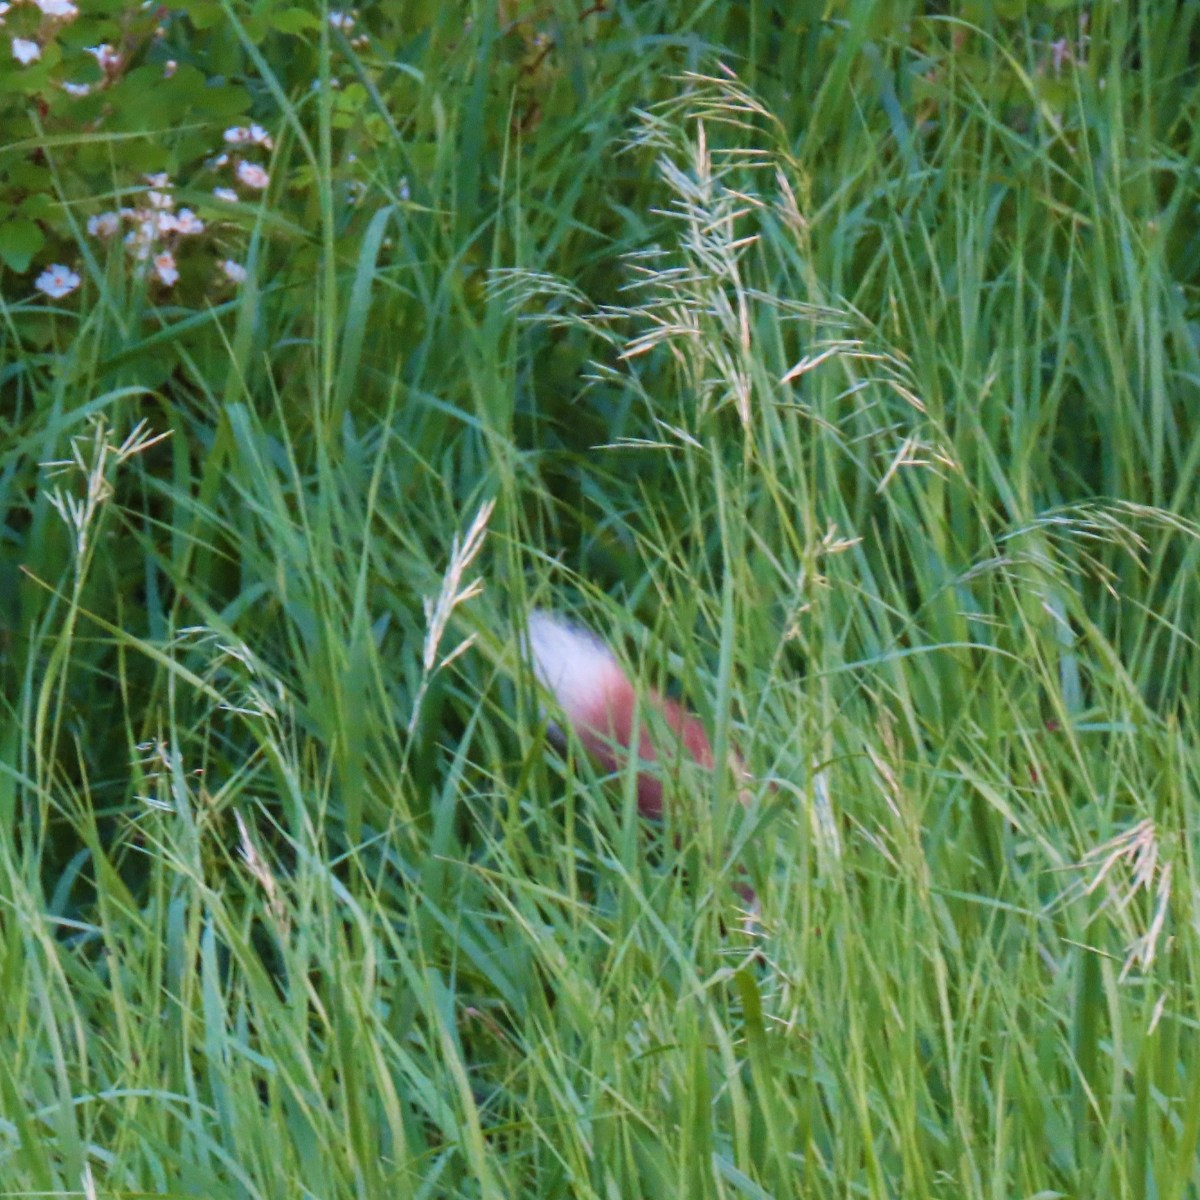 The white tip of a red fox's tail sticking out in tall grass